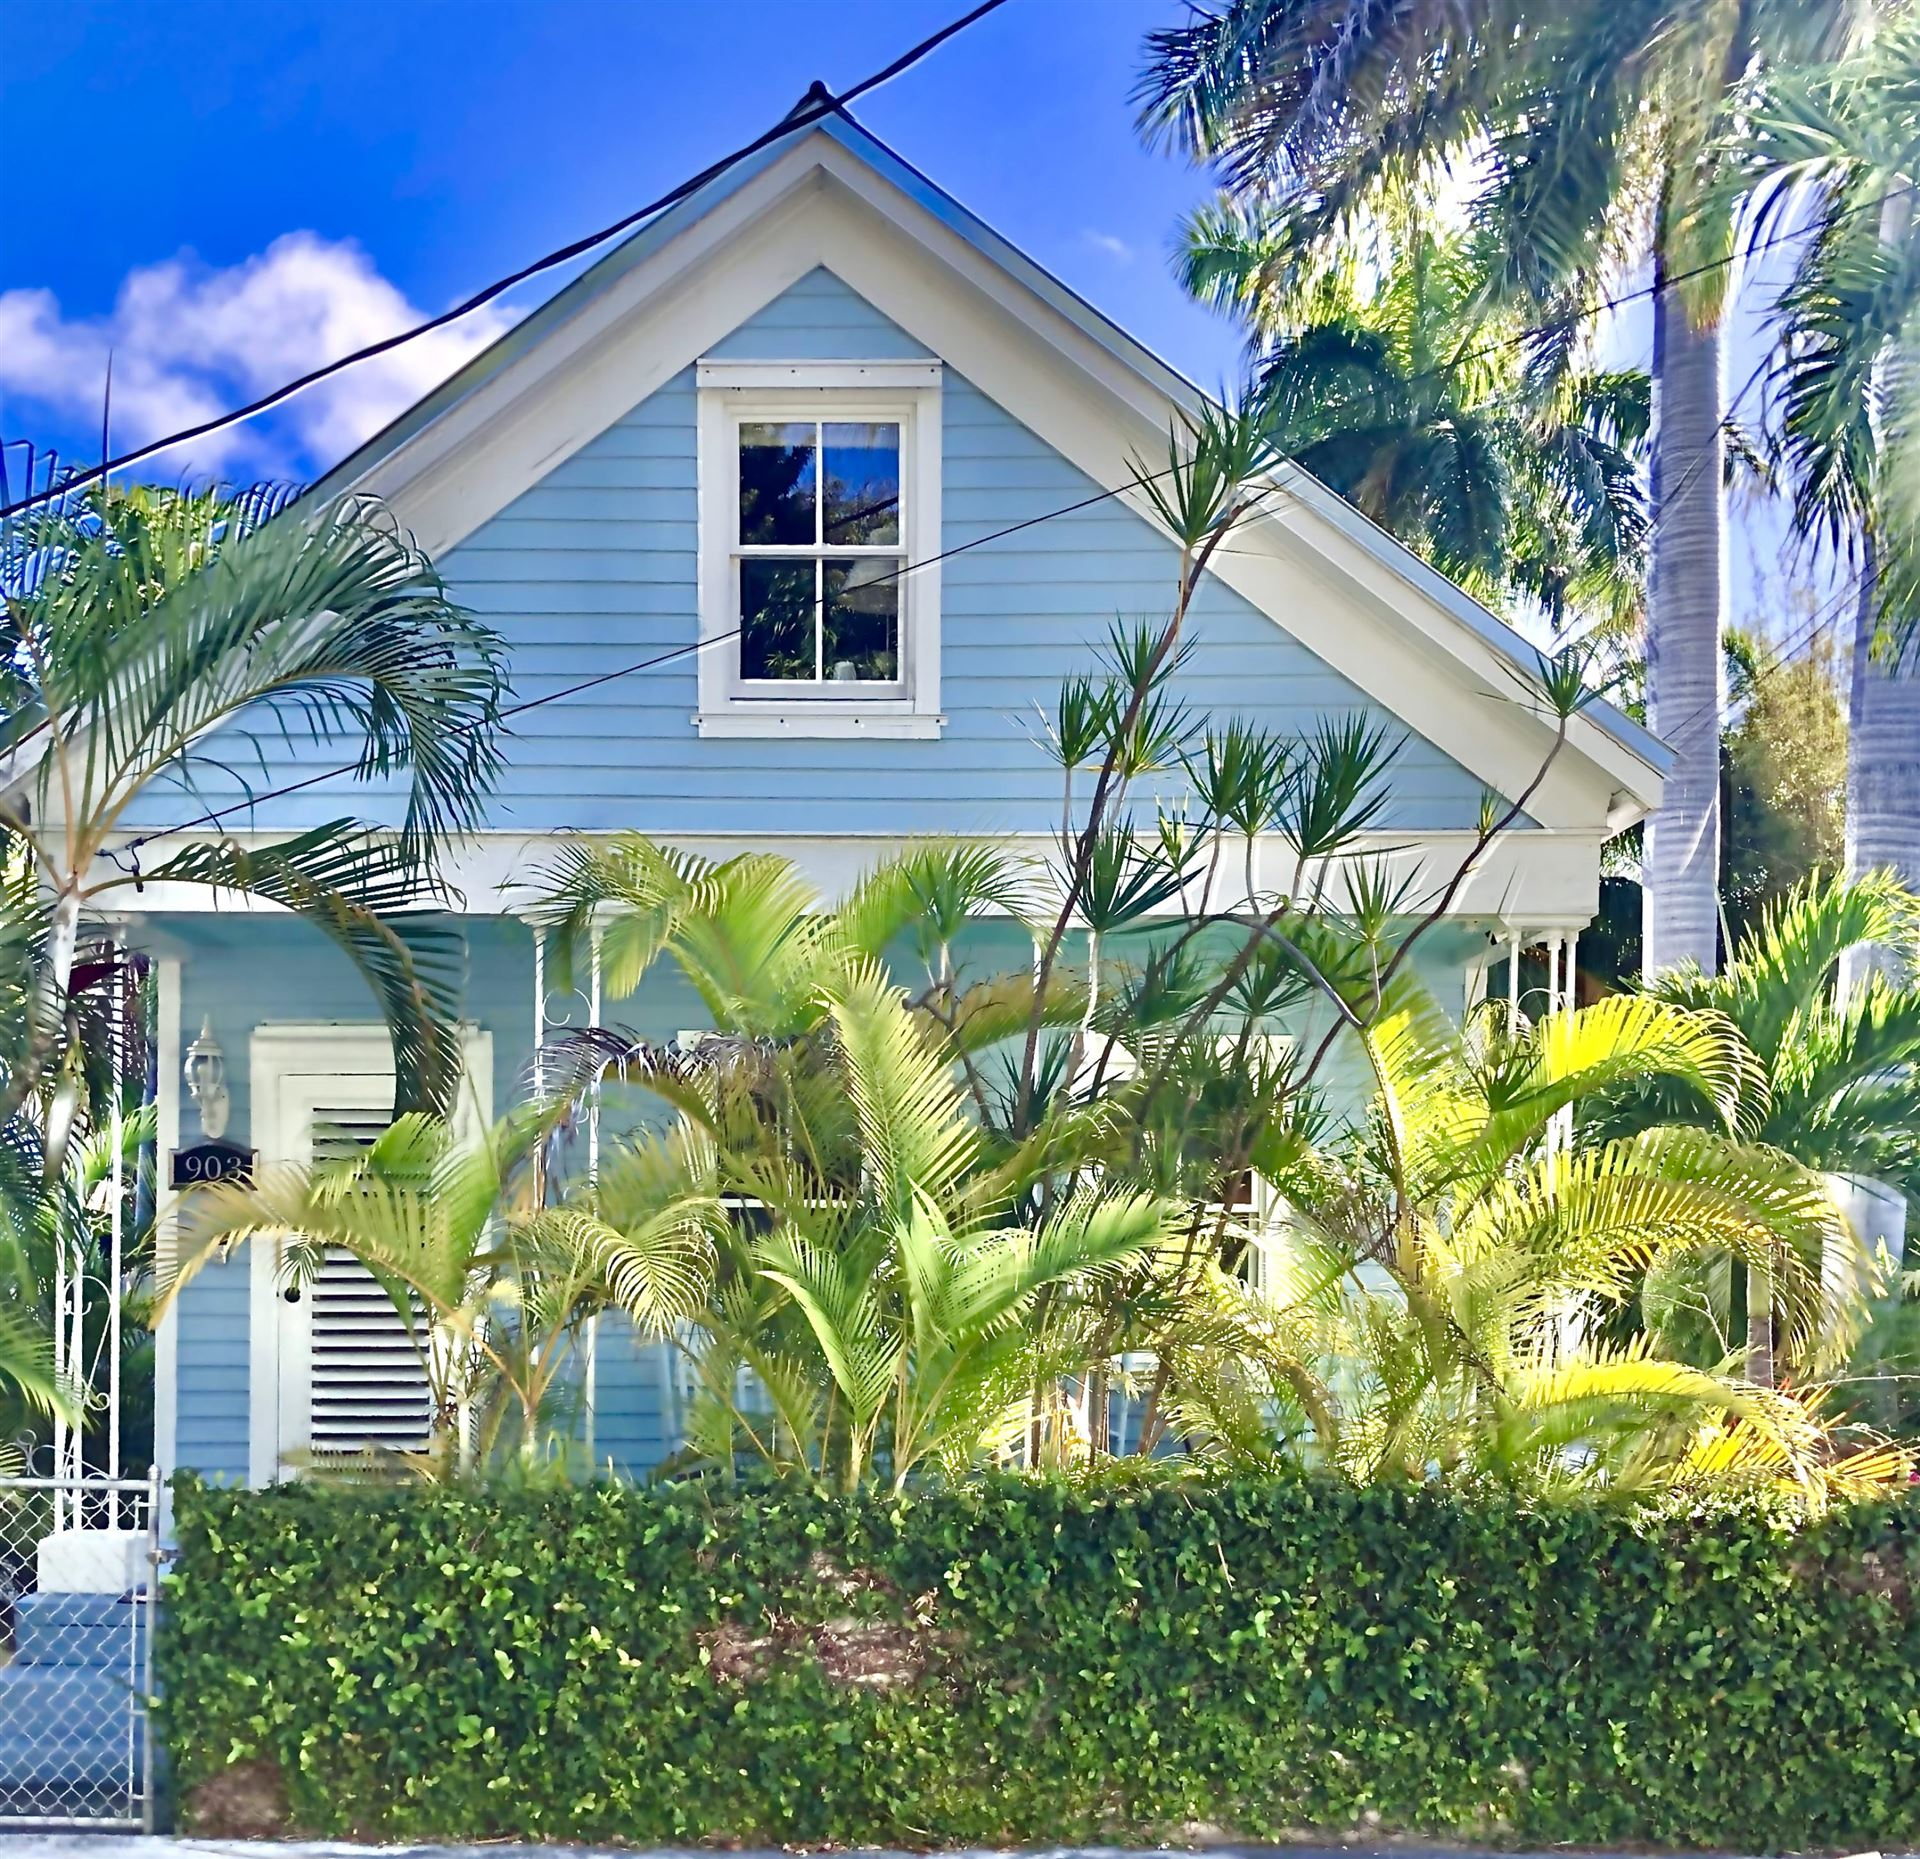 903 Windsor Lane, Key West, FL 33040 - #: 590487